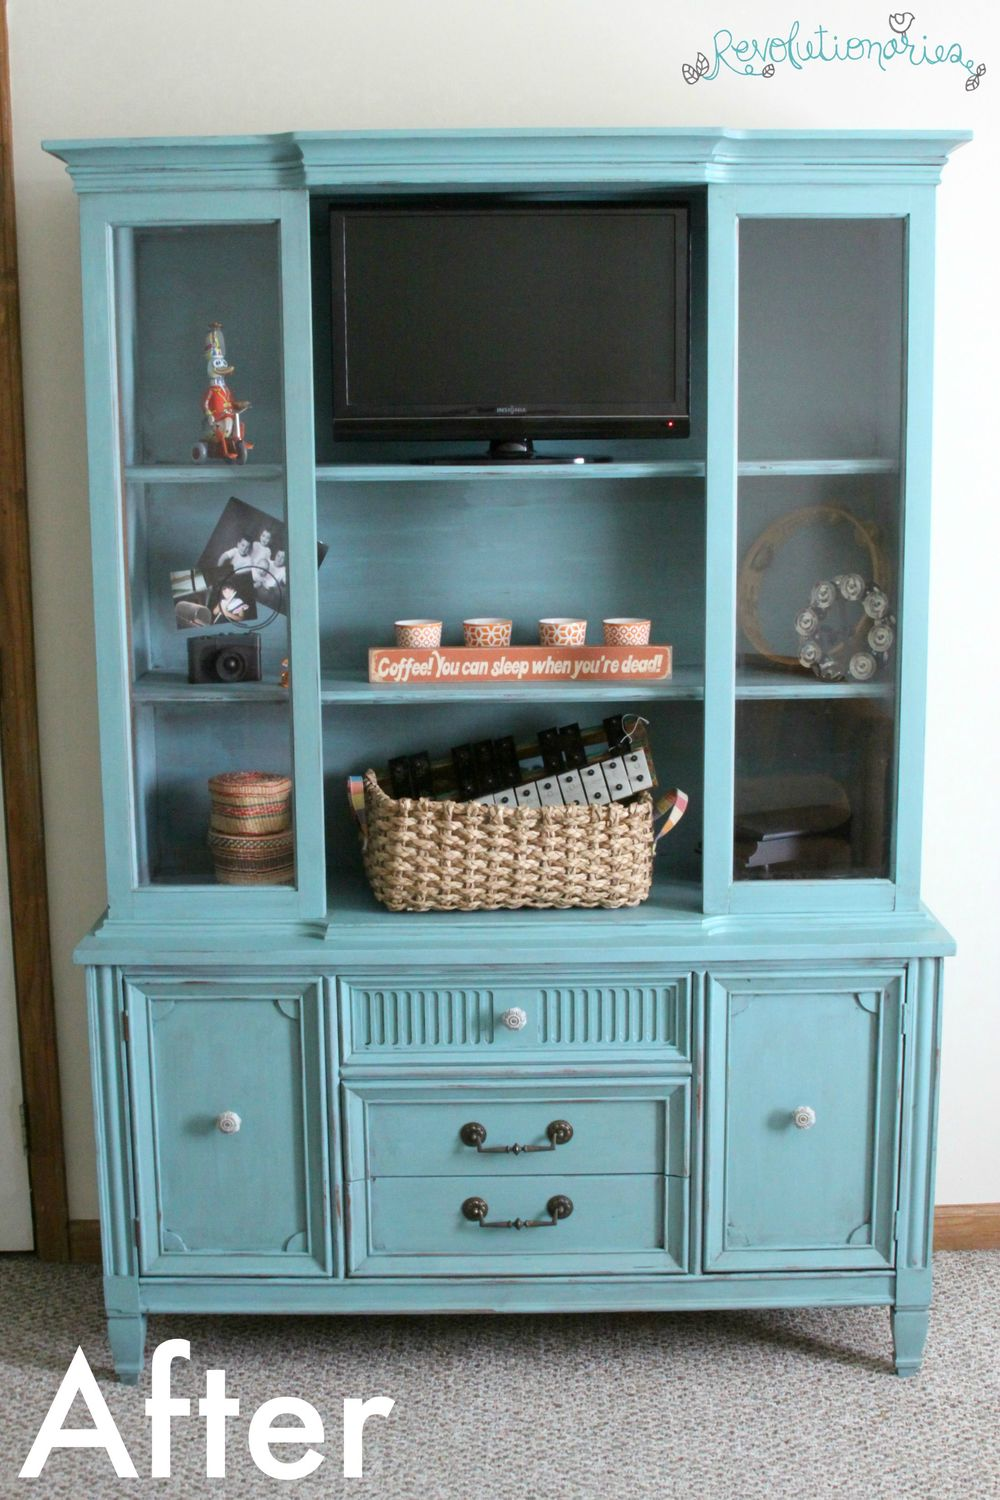 repurpose-china-cabinet-into-entertainment-center-7.jpg